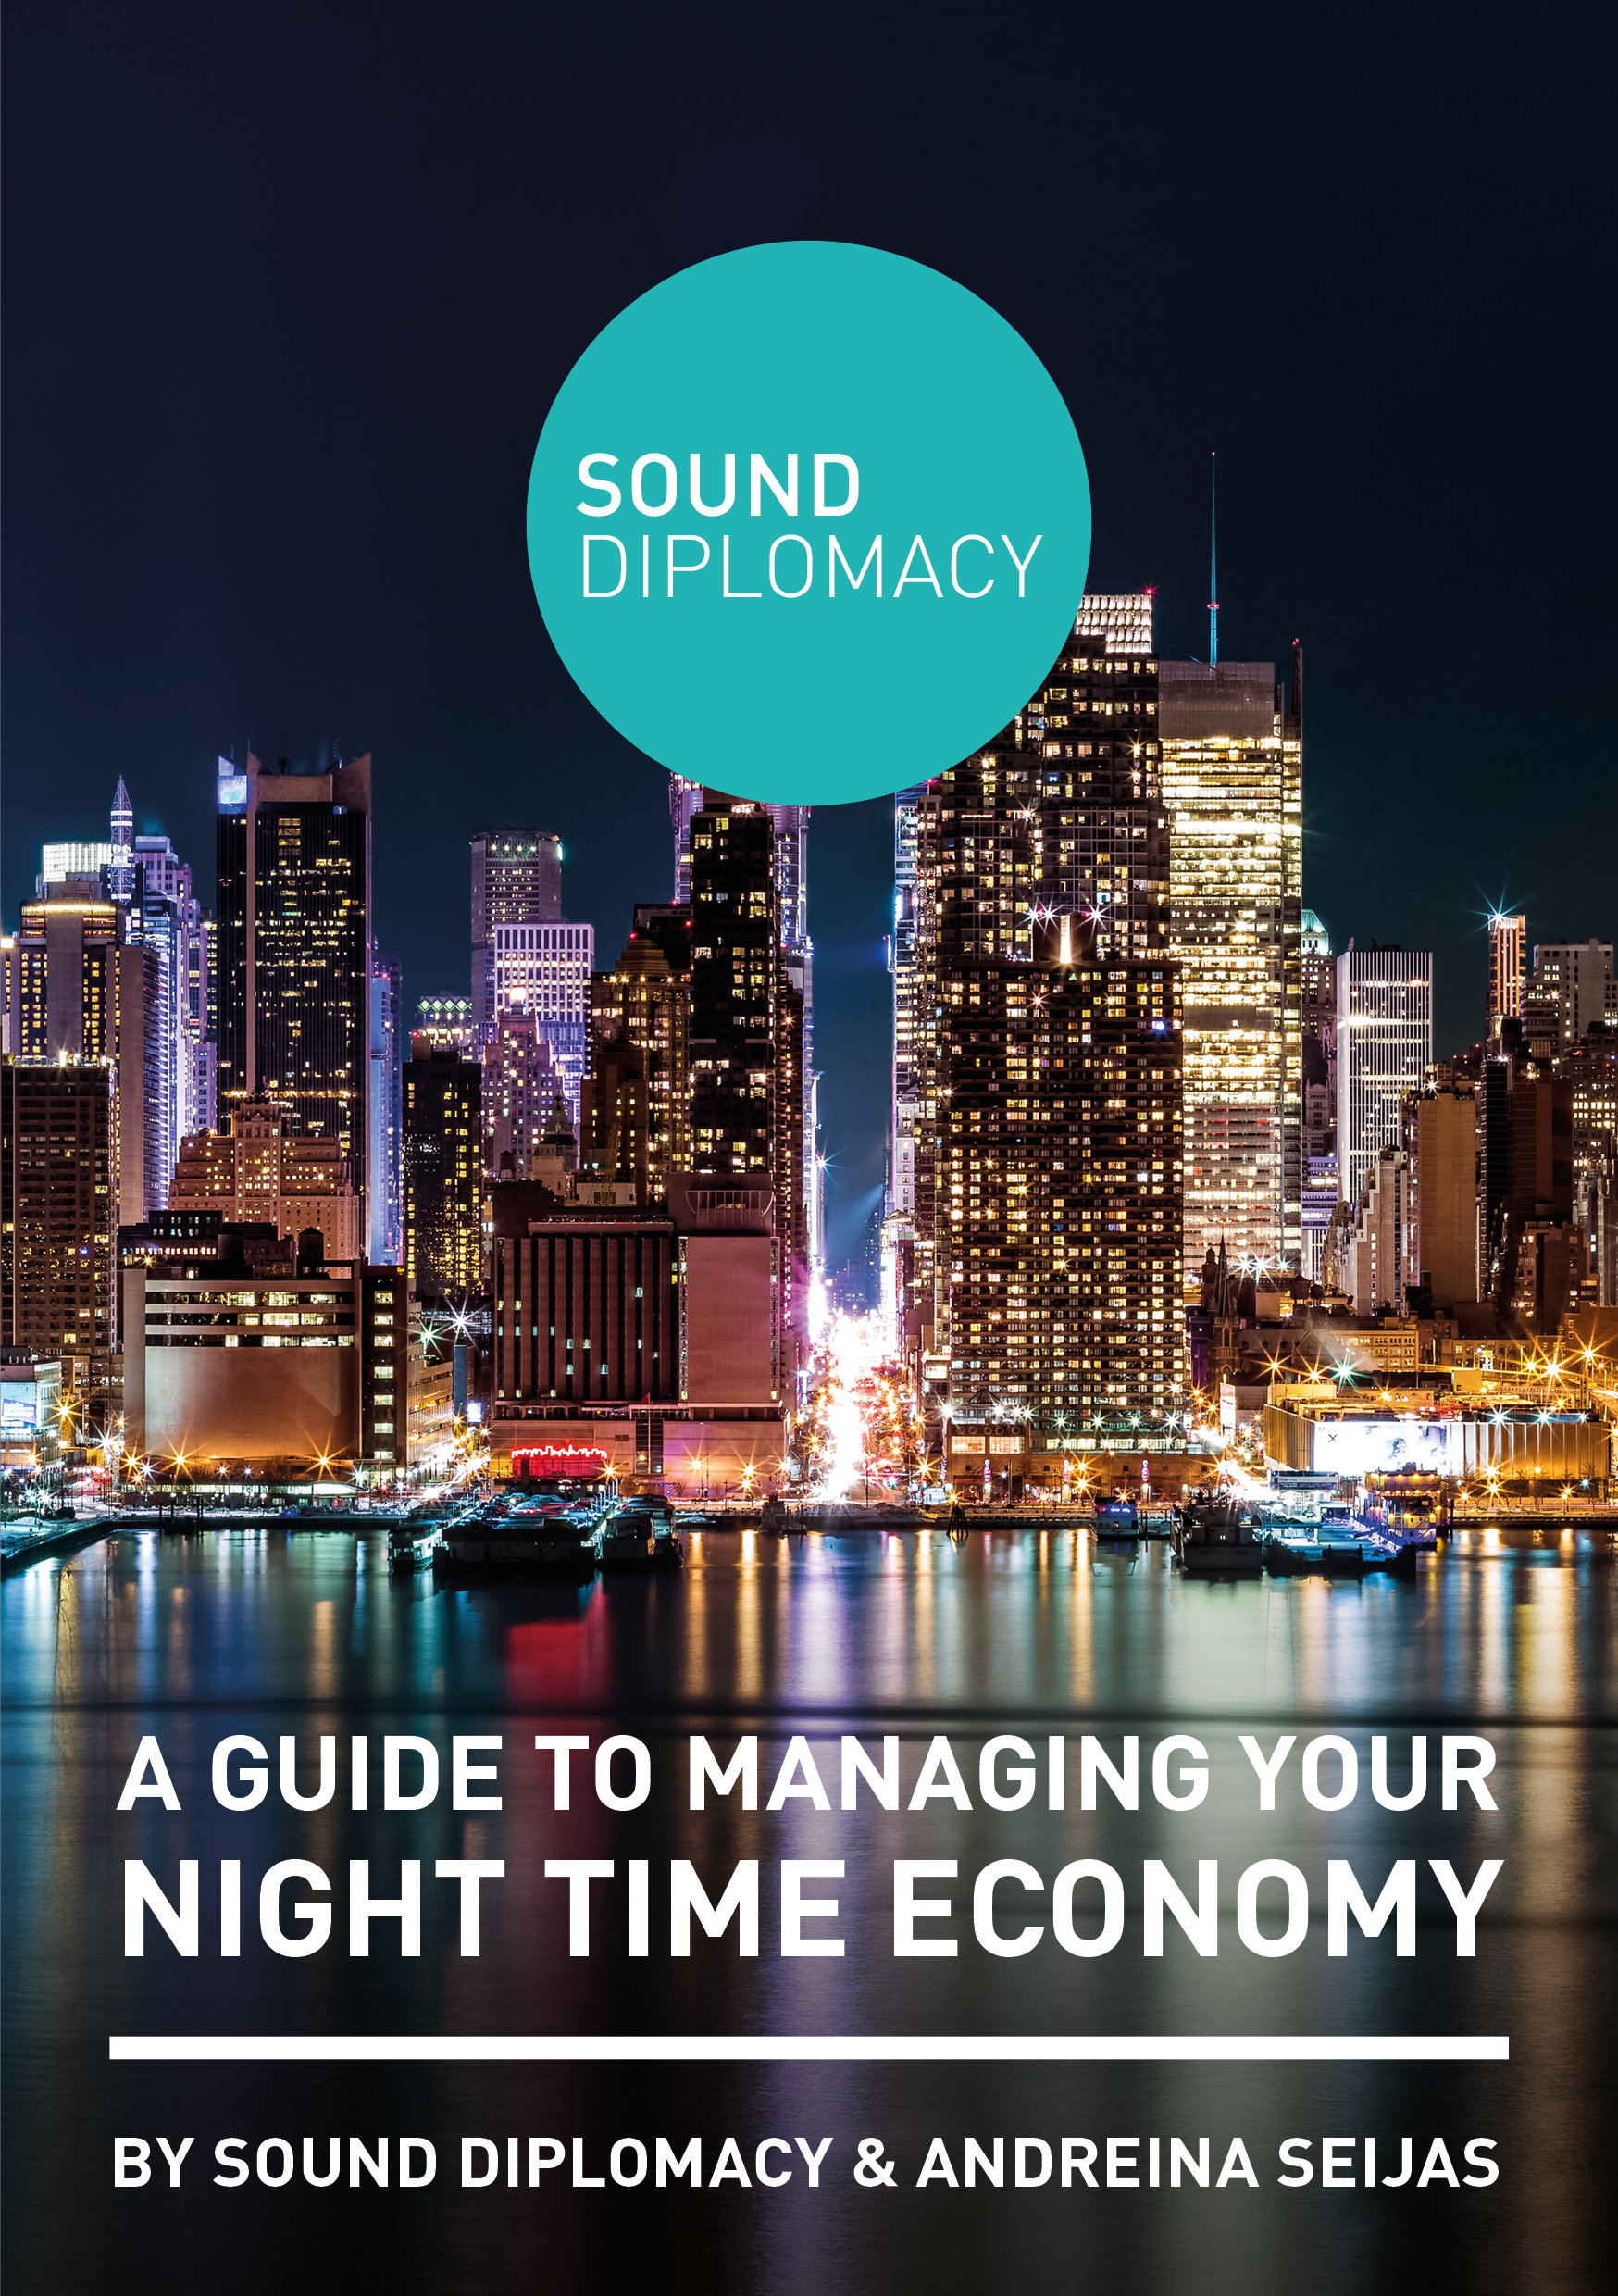 663 SOUND DIPLOMACY Night Time Booklet_English_Cover.jpg